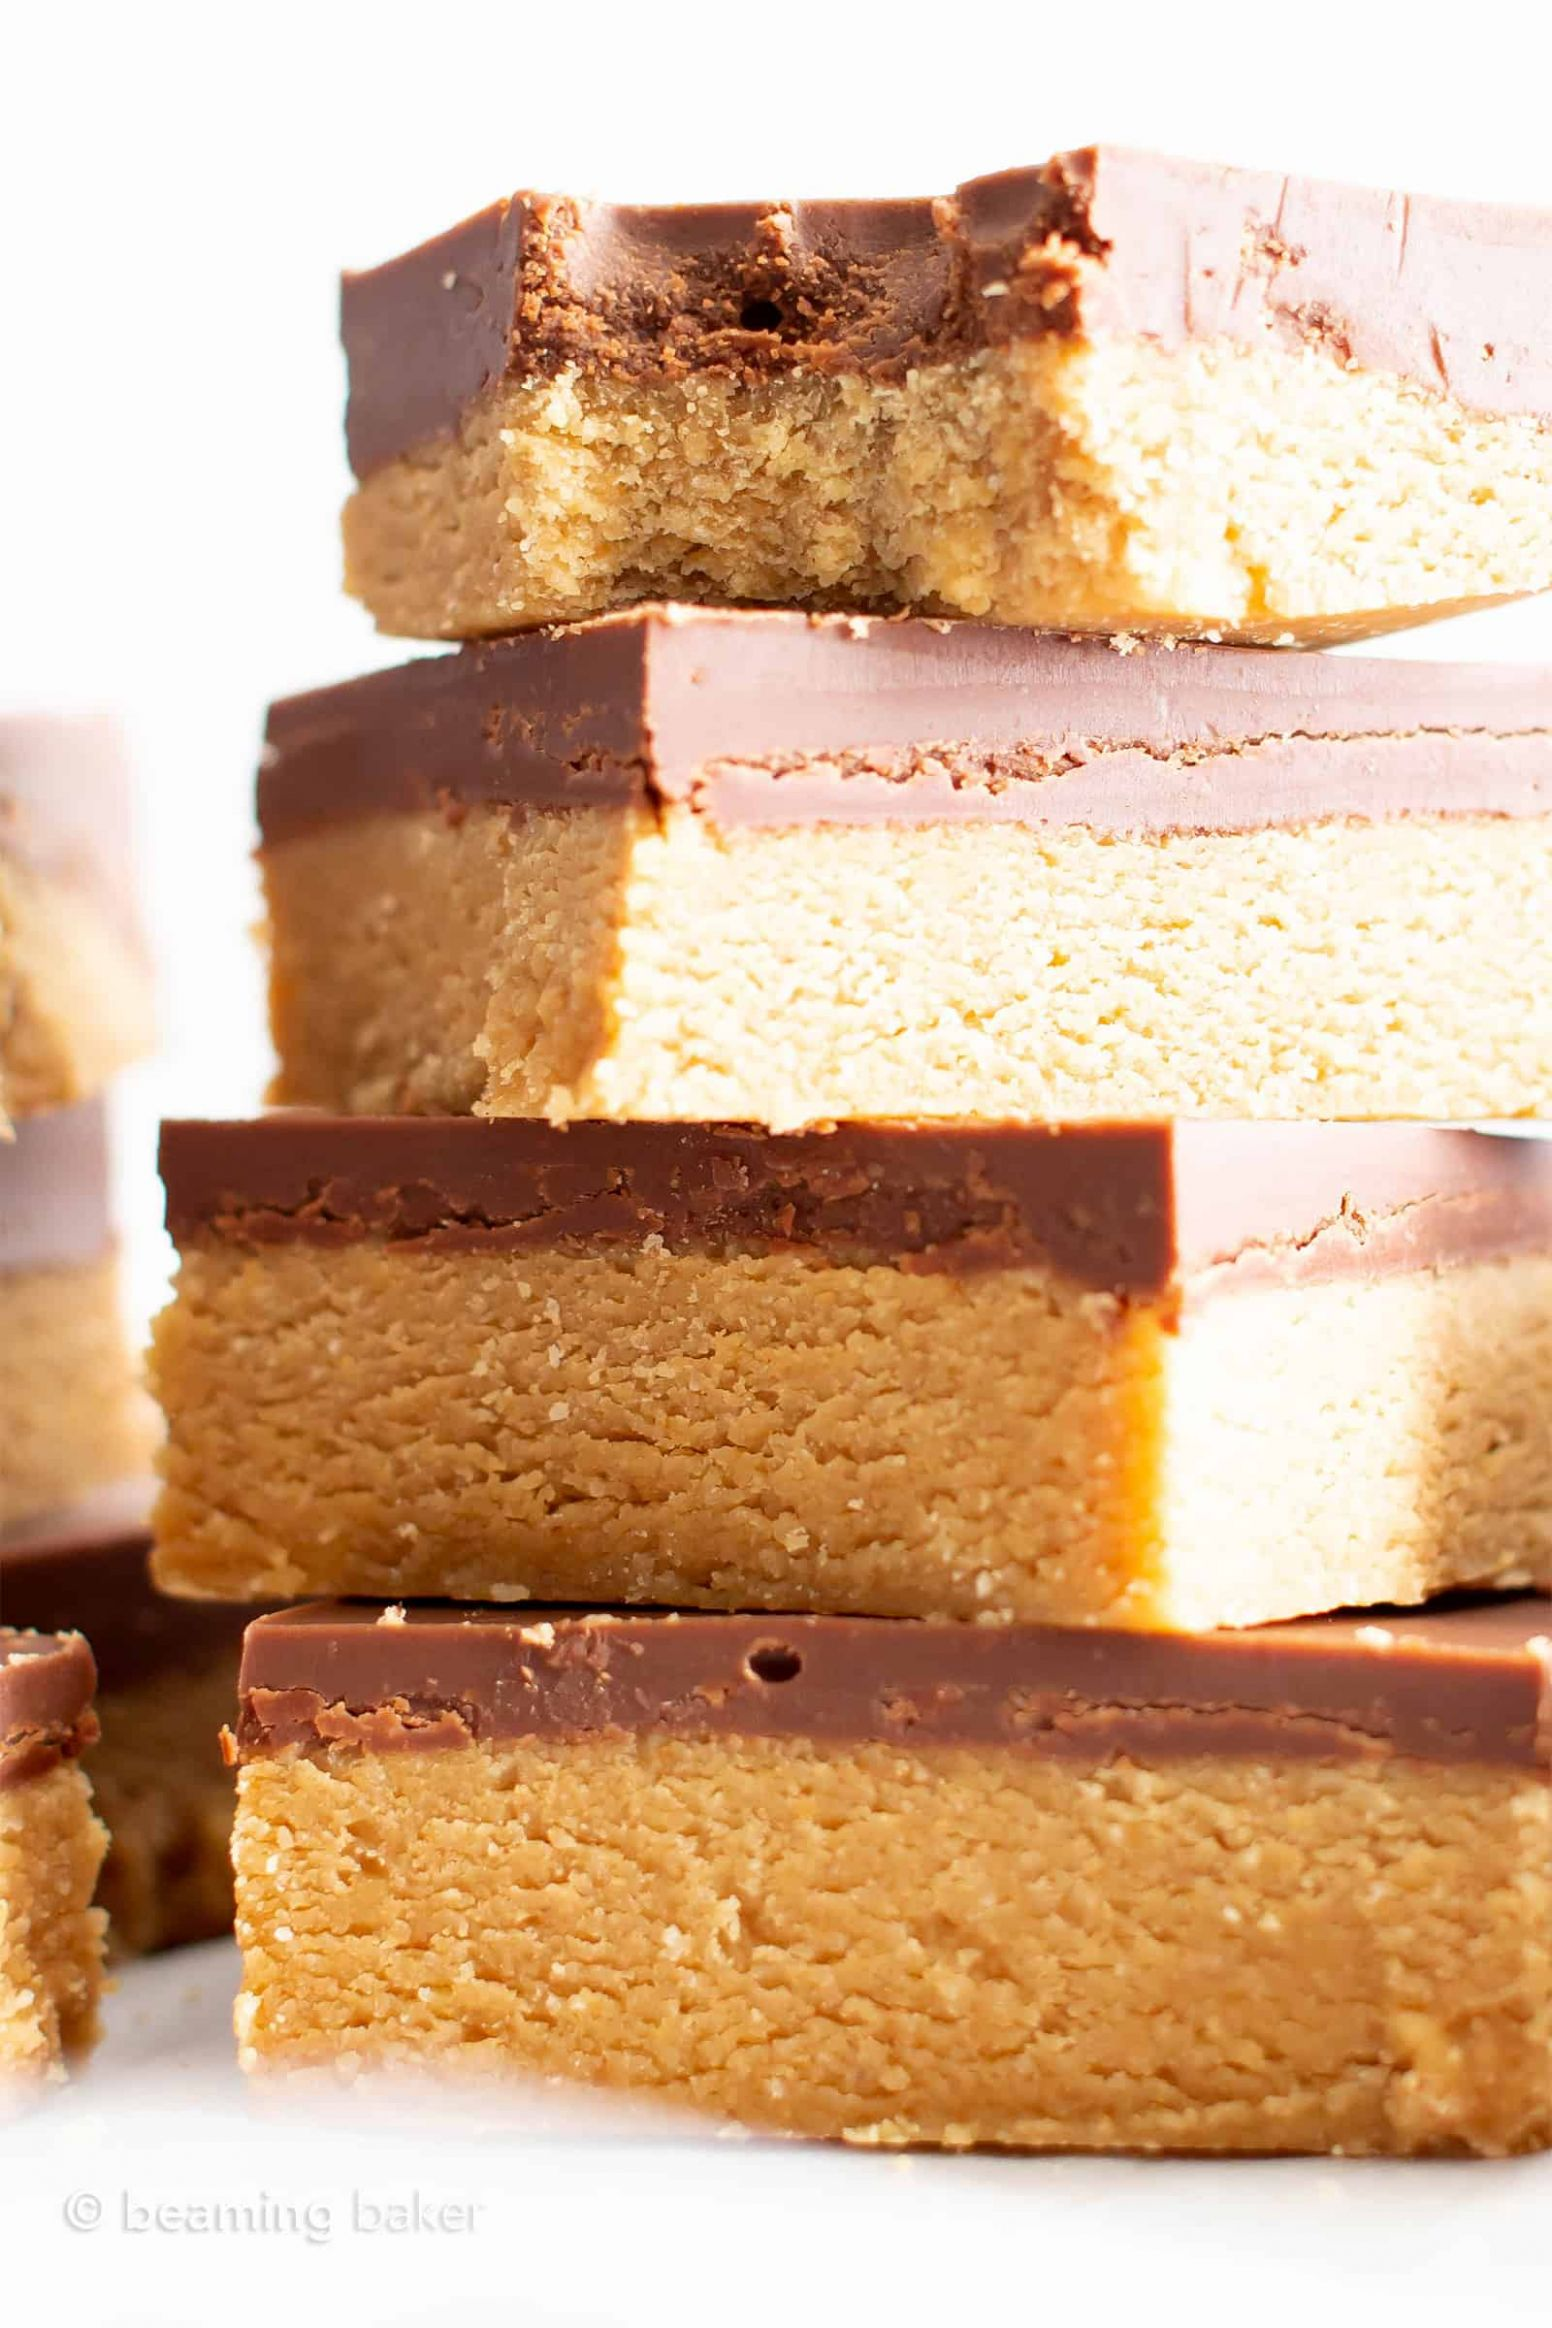 12 Ingredient Easy Vegan Chocolate Peanut Butter Bars (Gluten Free, Healthy,  Dairy-Free) - Cake Recipes Gluten And Dairy Free